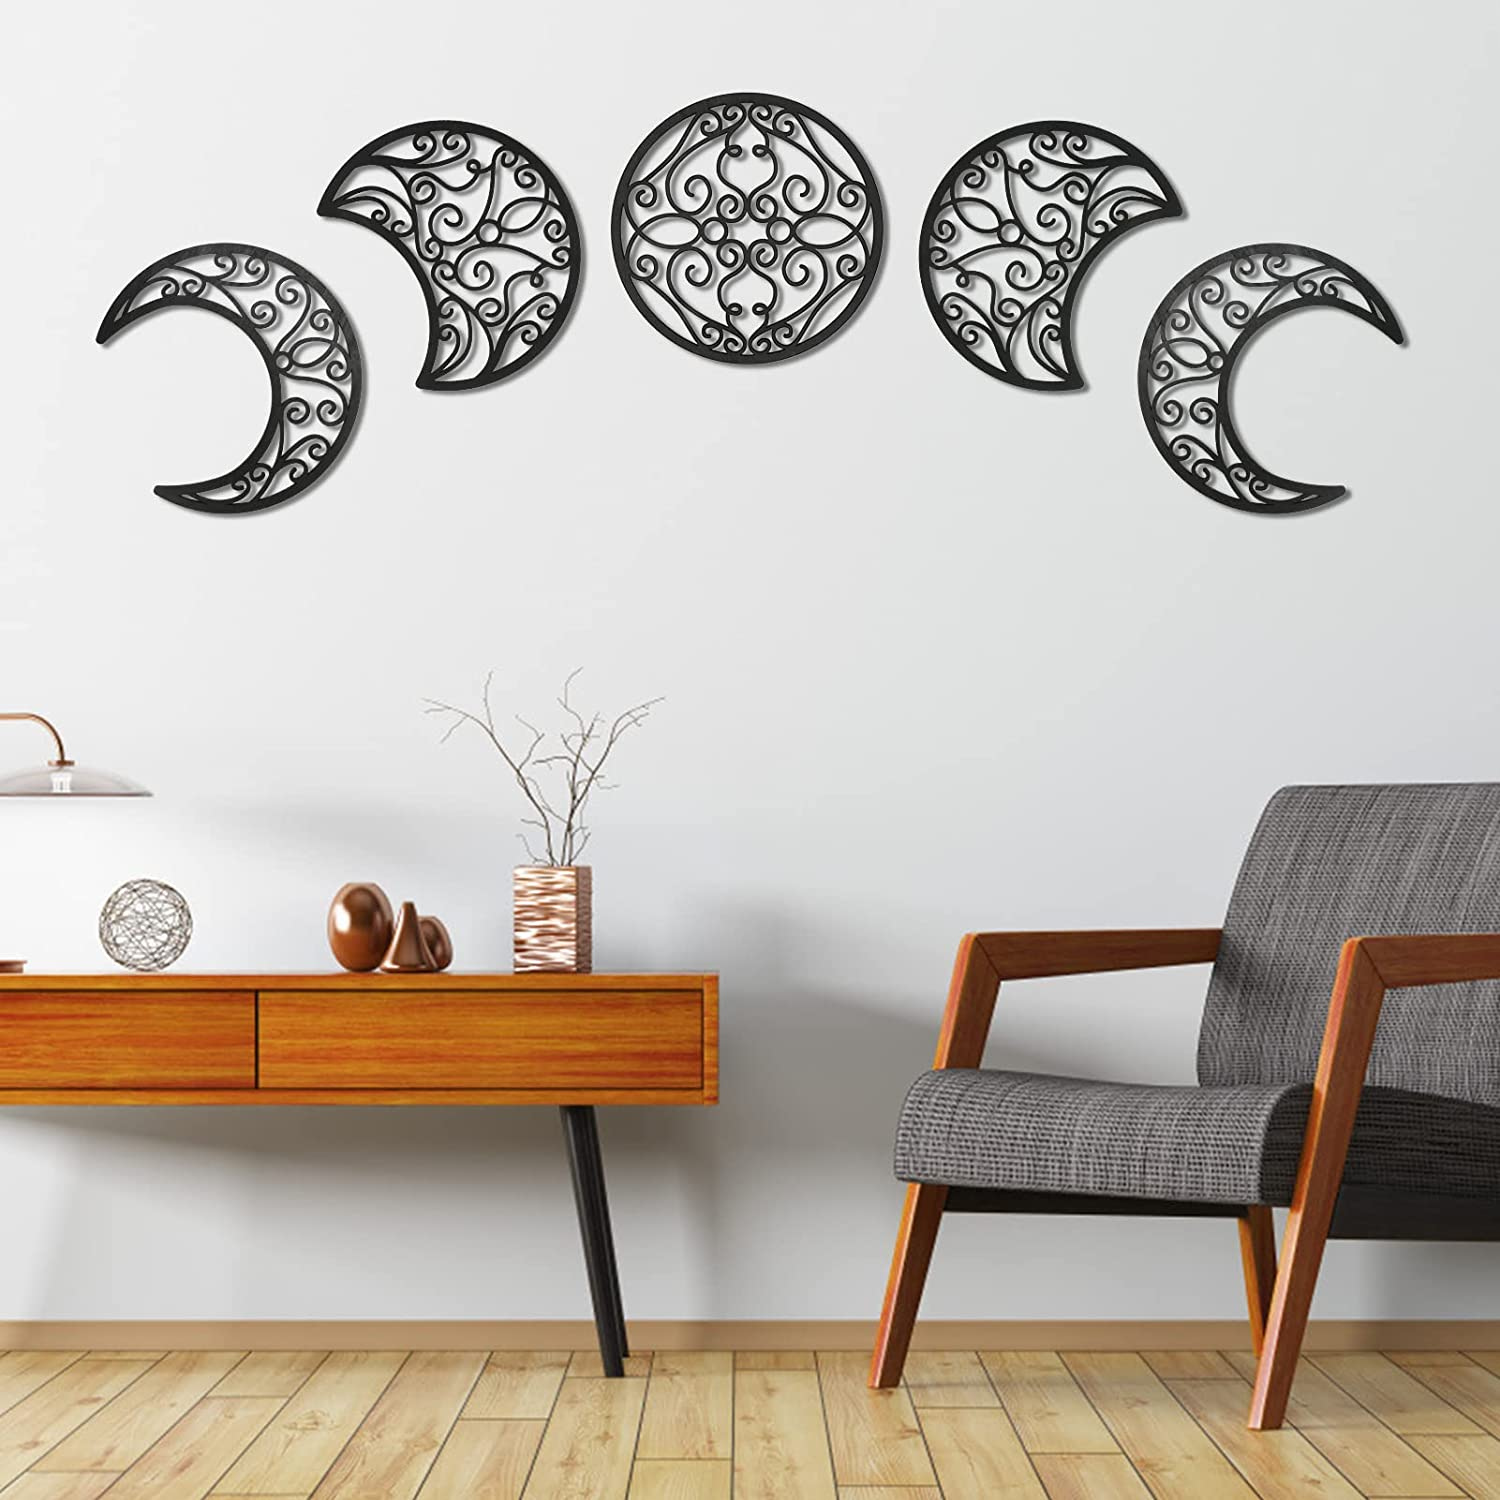 WIOR 5 PCs Moon Phases Wall Decor Set, Wooden Wall Decoration with Natural Full/Half/Crescent Moon Appearance Design, Boho Nordic Wall Hanging Art Ornaments for Home Living Room Bedroom Office - Black